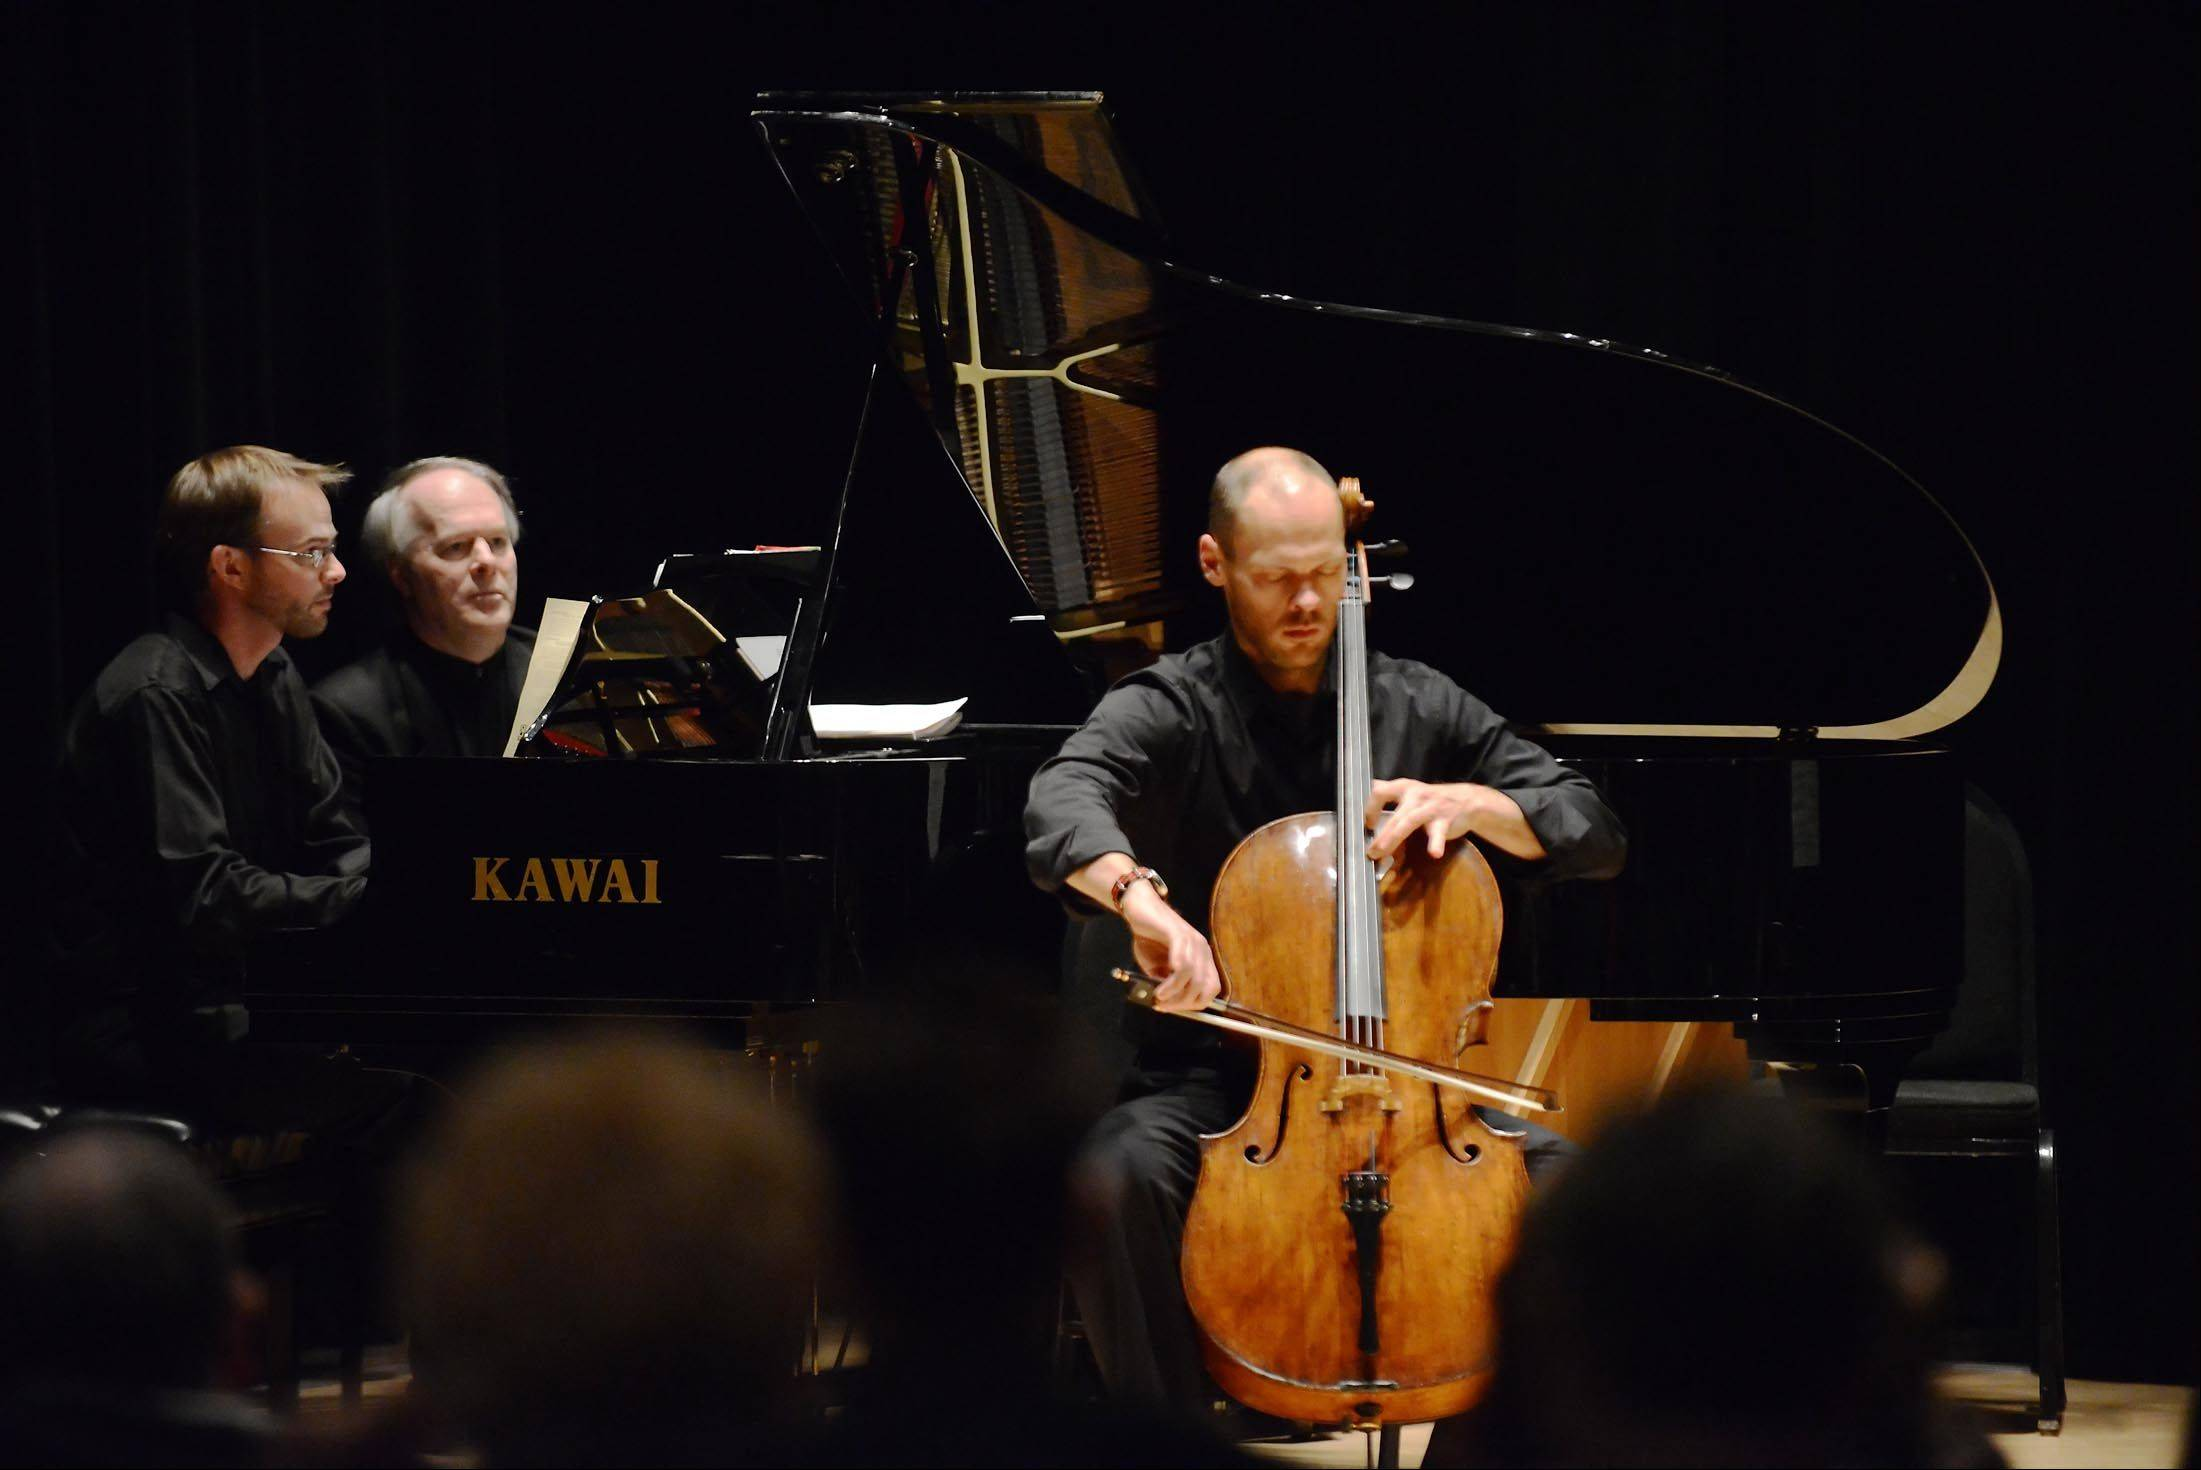 Brant Taylor, of the Chicago Symphony Orchestra, plays the cello Sunday during the Elgin Youth Symphony Orchestra faculty's fundraising recital at Elgin Community College. David Anderson accompanies him on piano. Taylor is the coach of the EYSO's Maud Powell String Quartet.